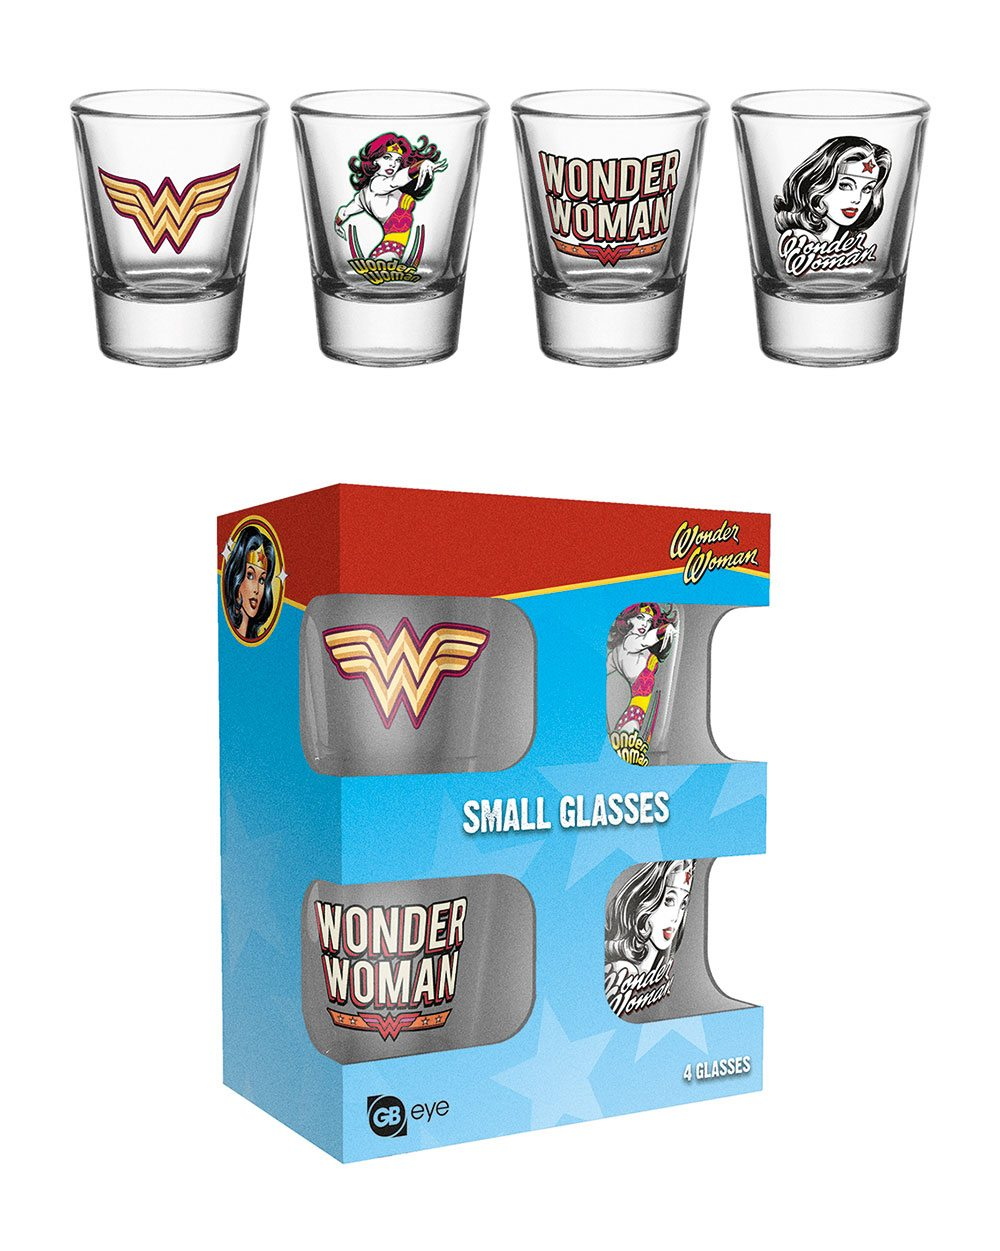 Wonder Woman Shotglass 4-Pack 60´s Pop